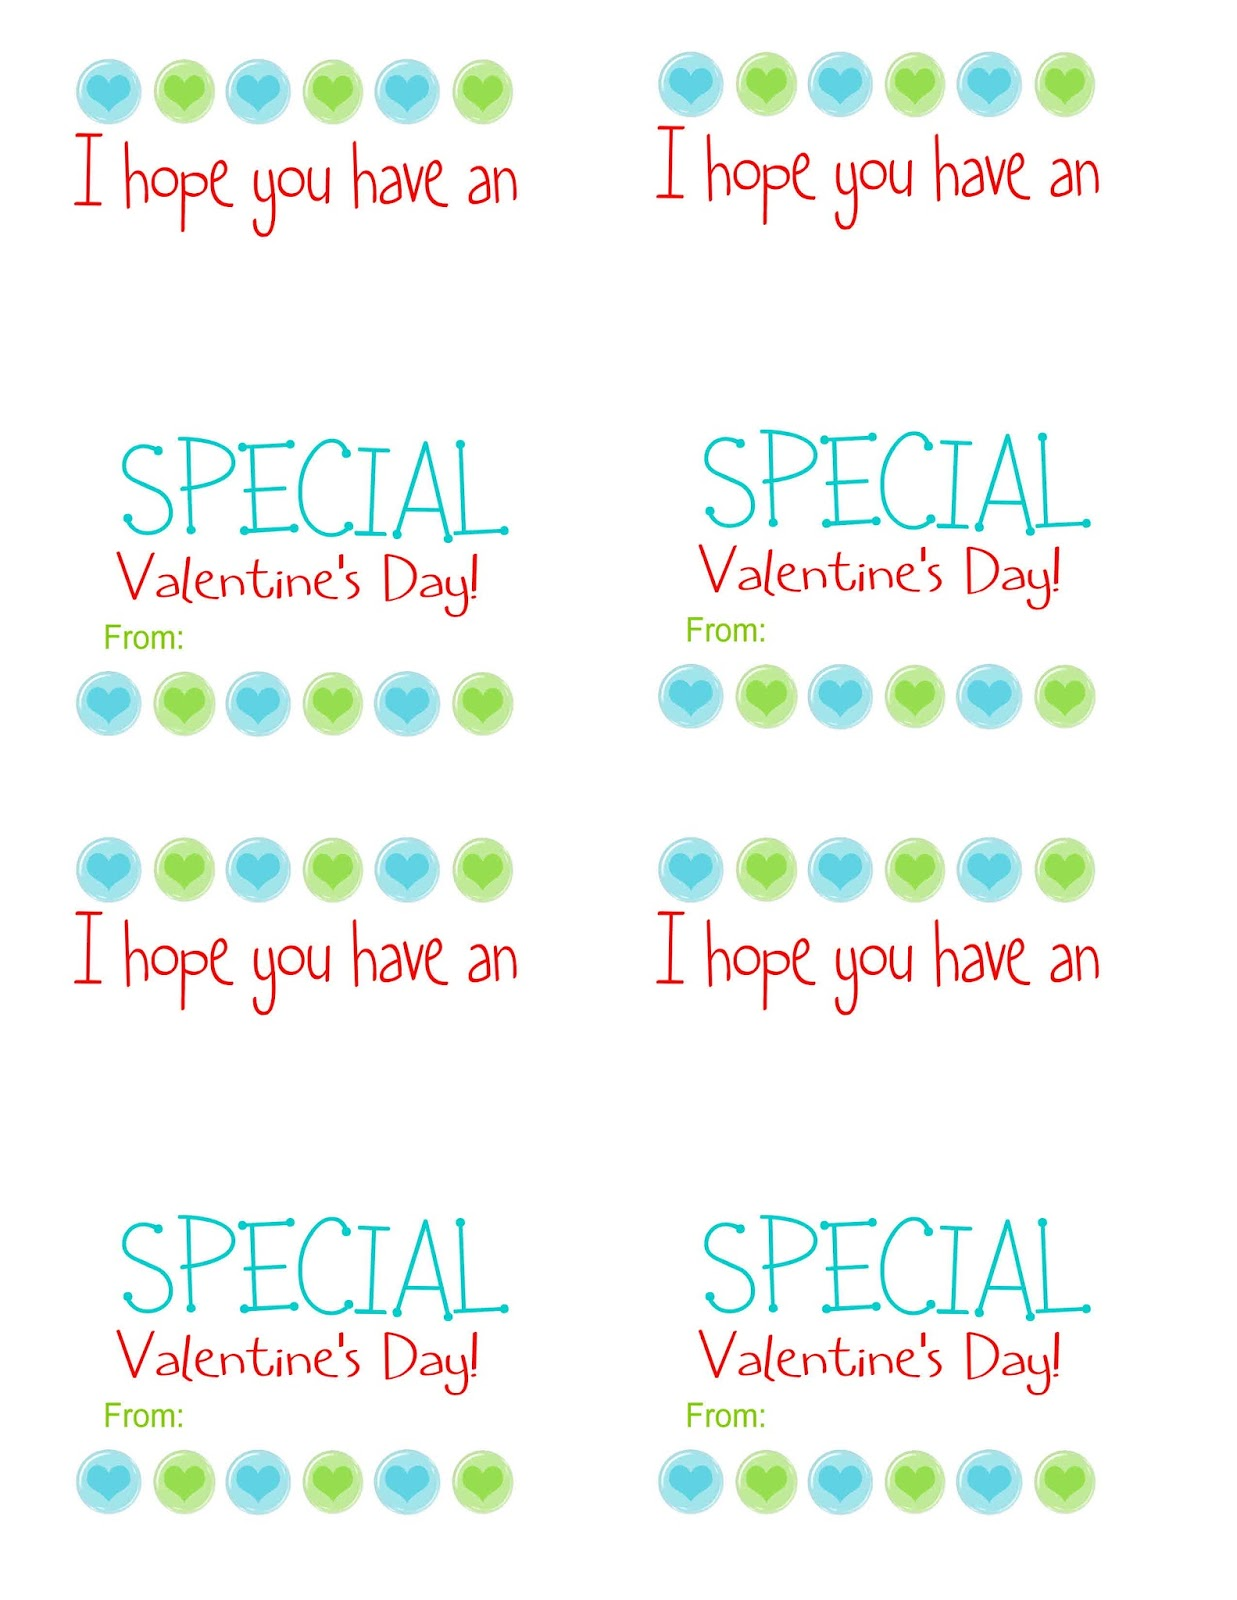 picture relating to Extra Gum Valentine Printable named Exceptional Spouse and children Favorites: Valentines Working day Handle Printables